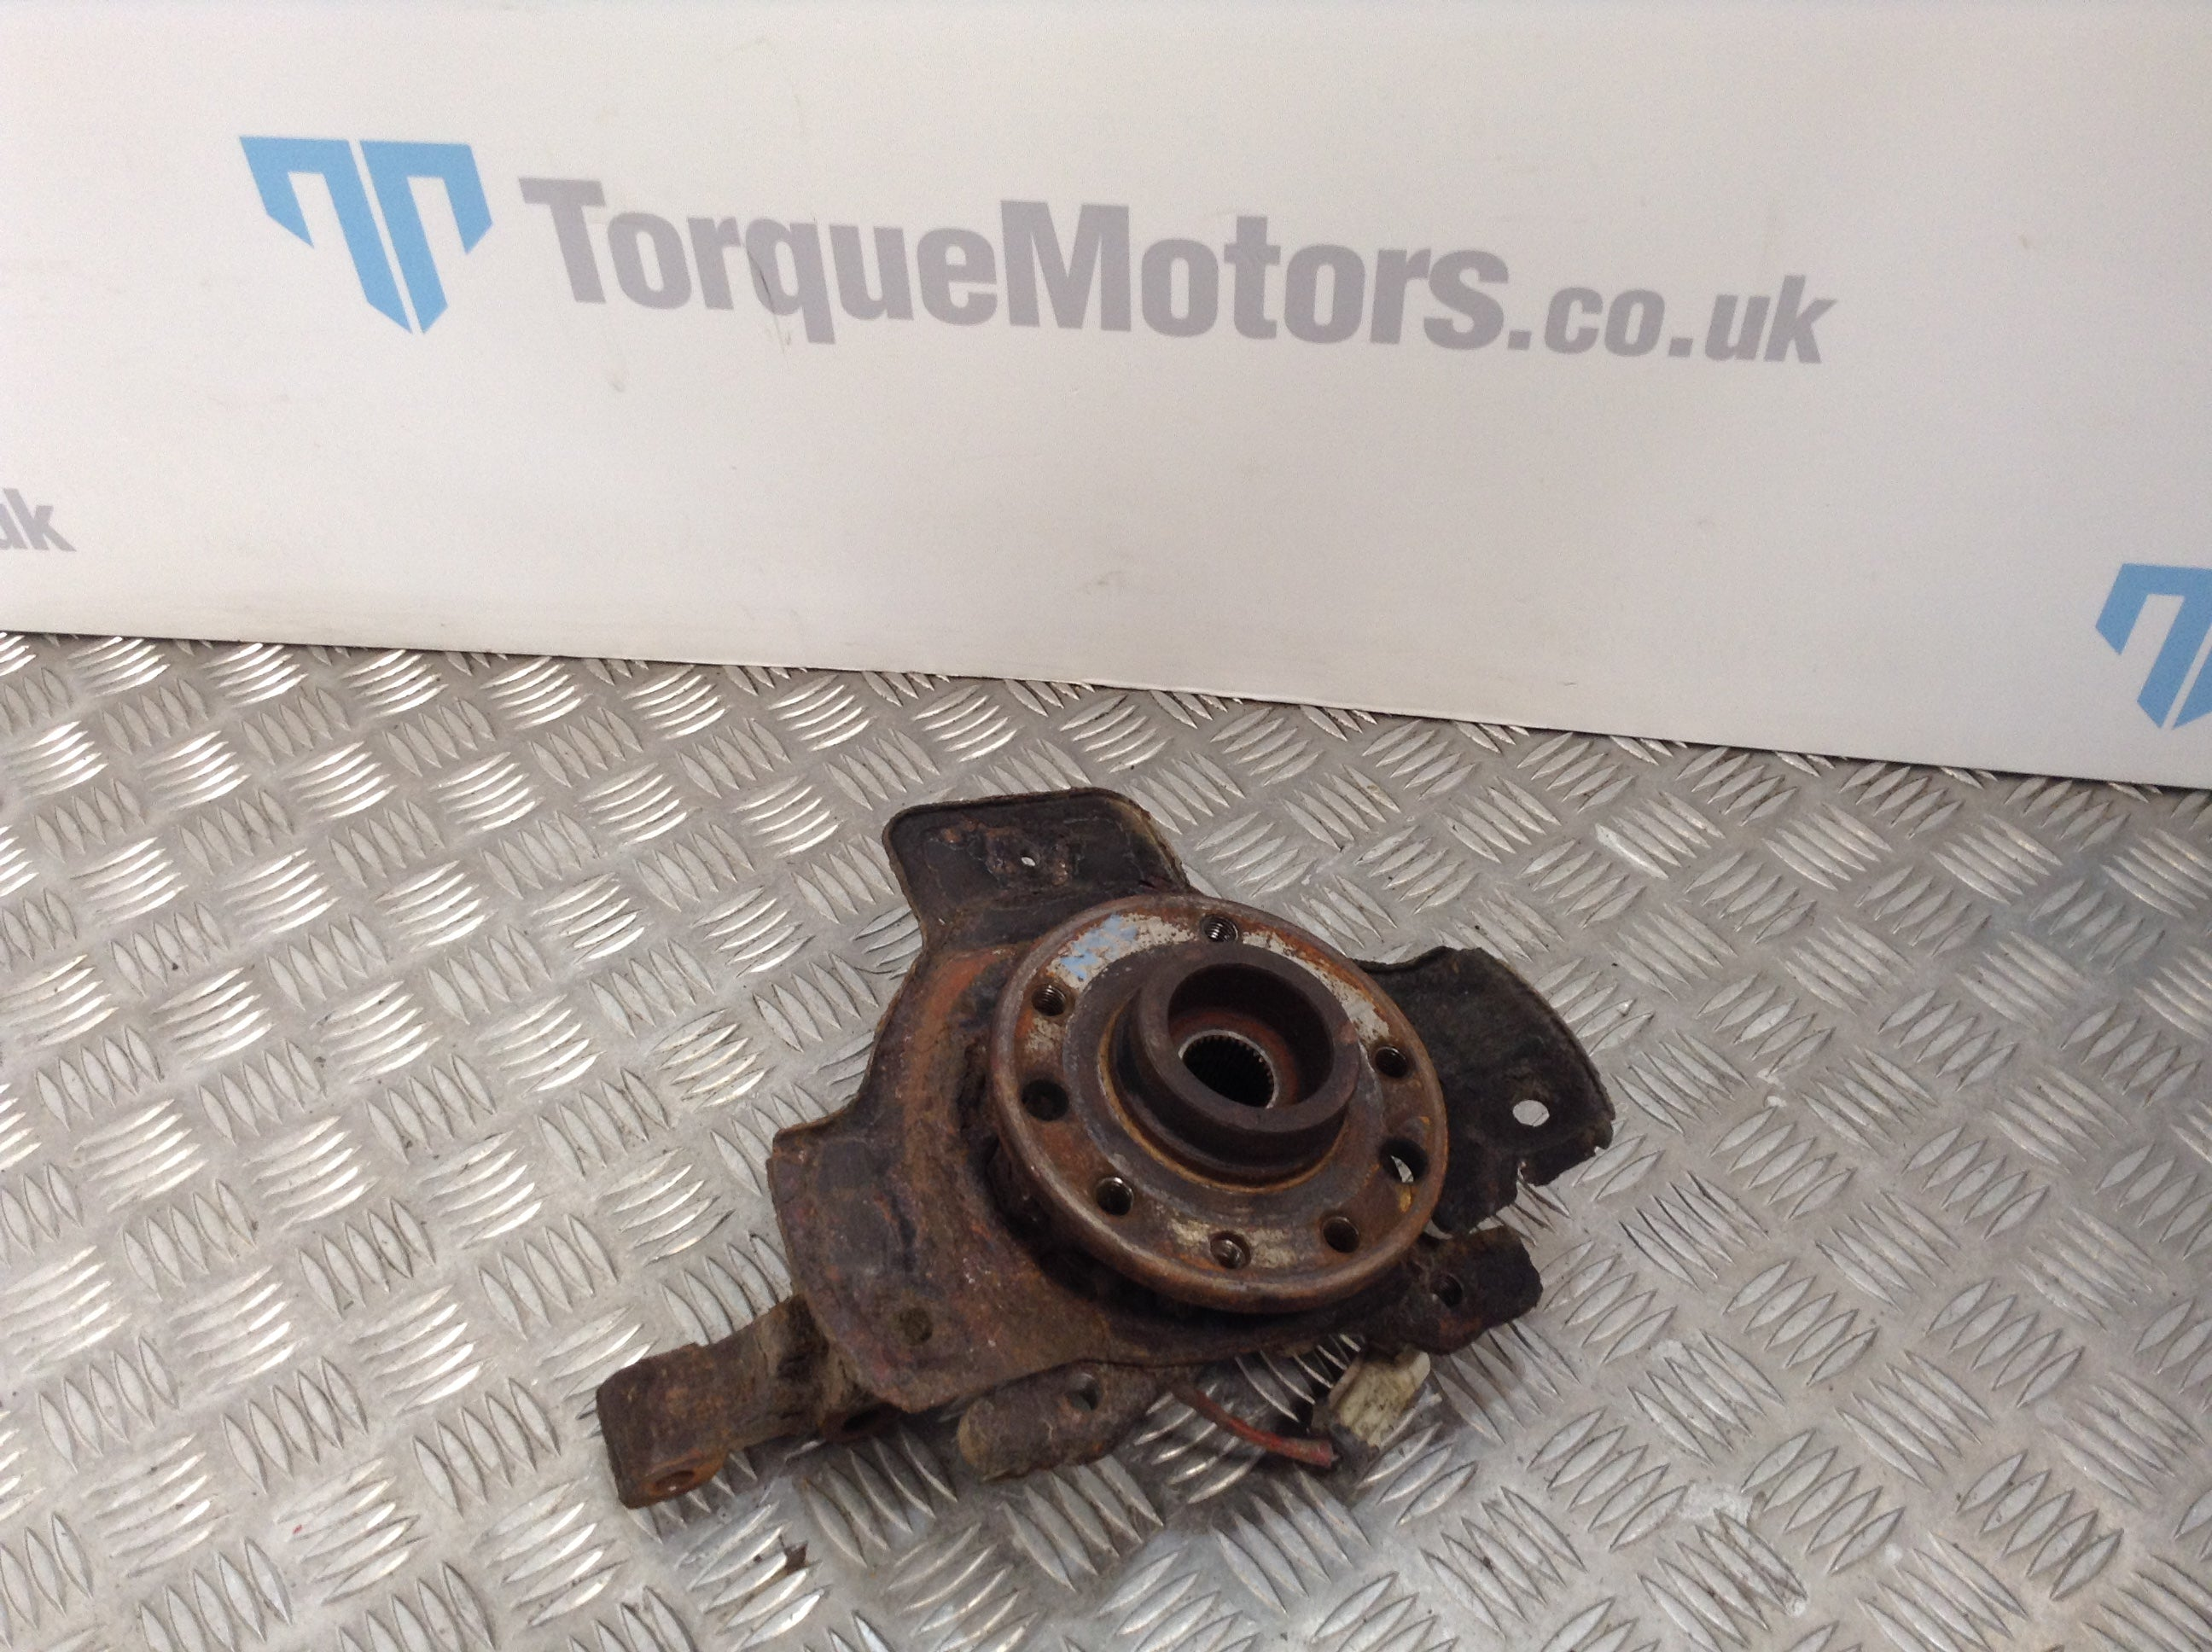 Vauxhall Used Car Parts | Vauxhall Car Spares | Torque Motors